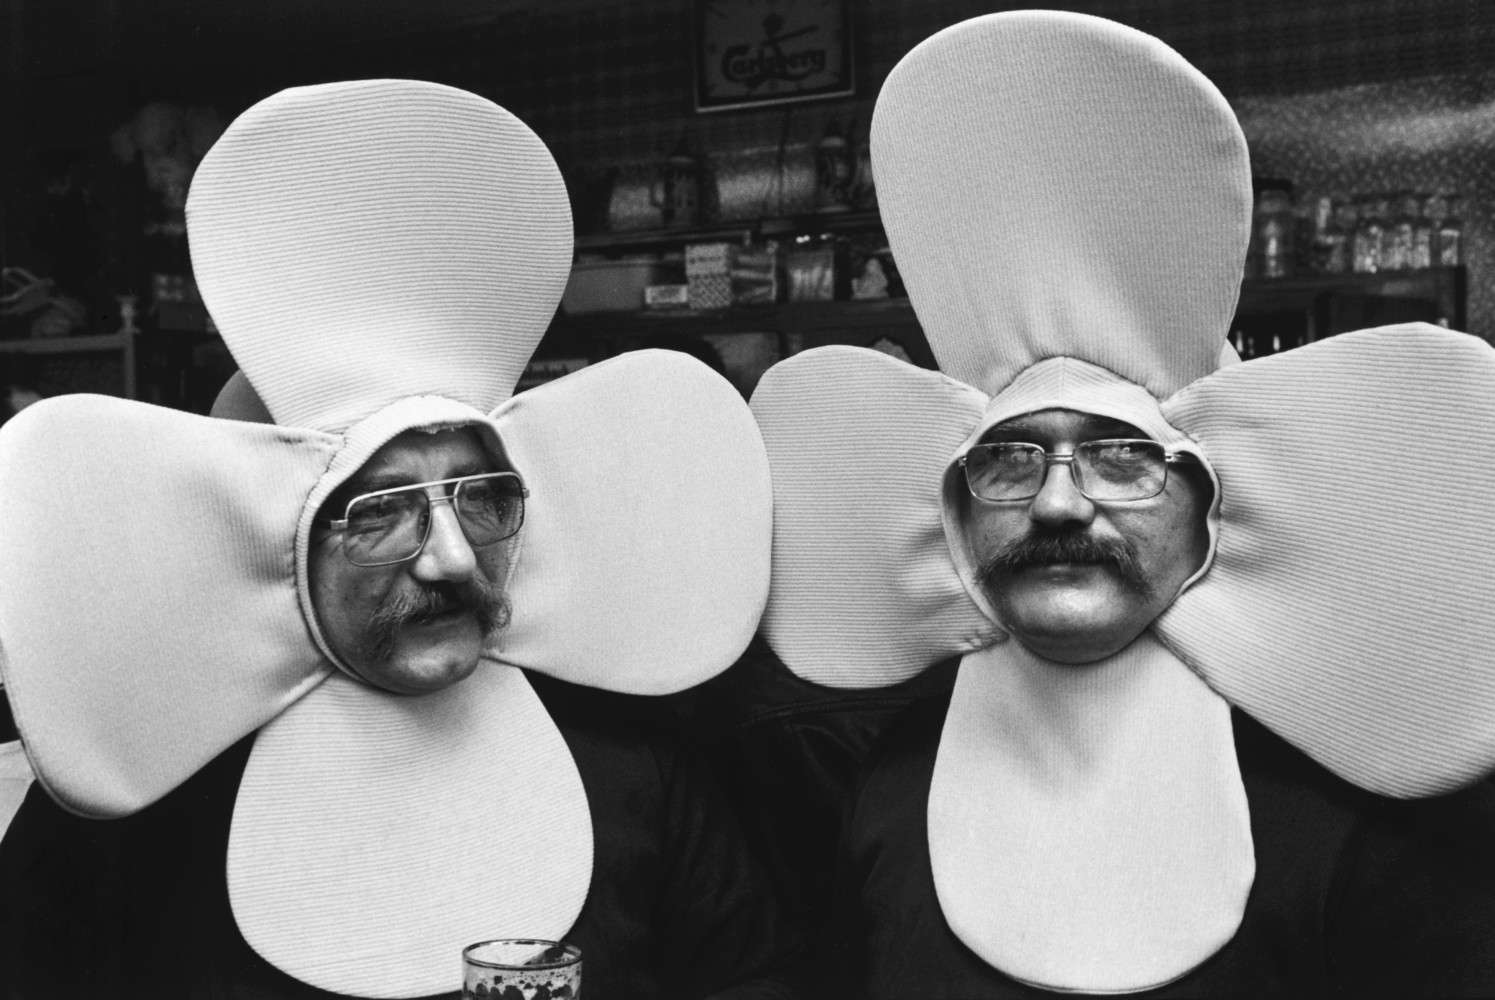 Black and white street photography by Richard Kalvar, two men dressed as flowers in La Louviere, Belgium.